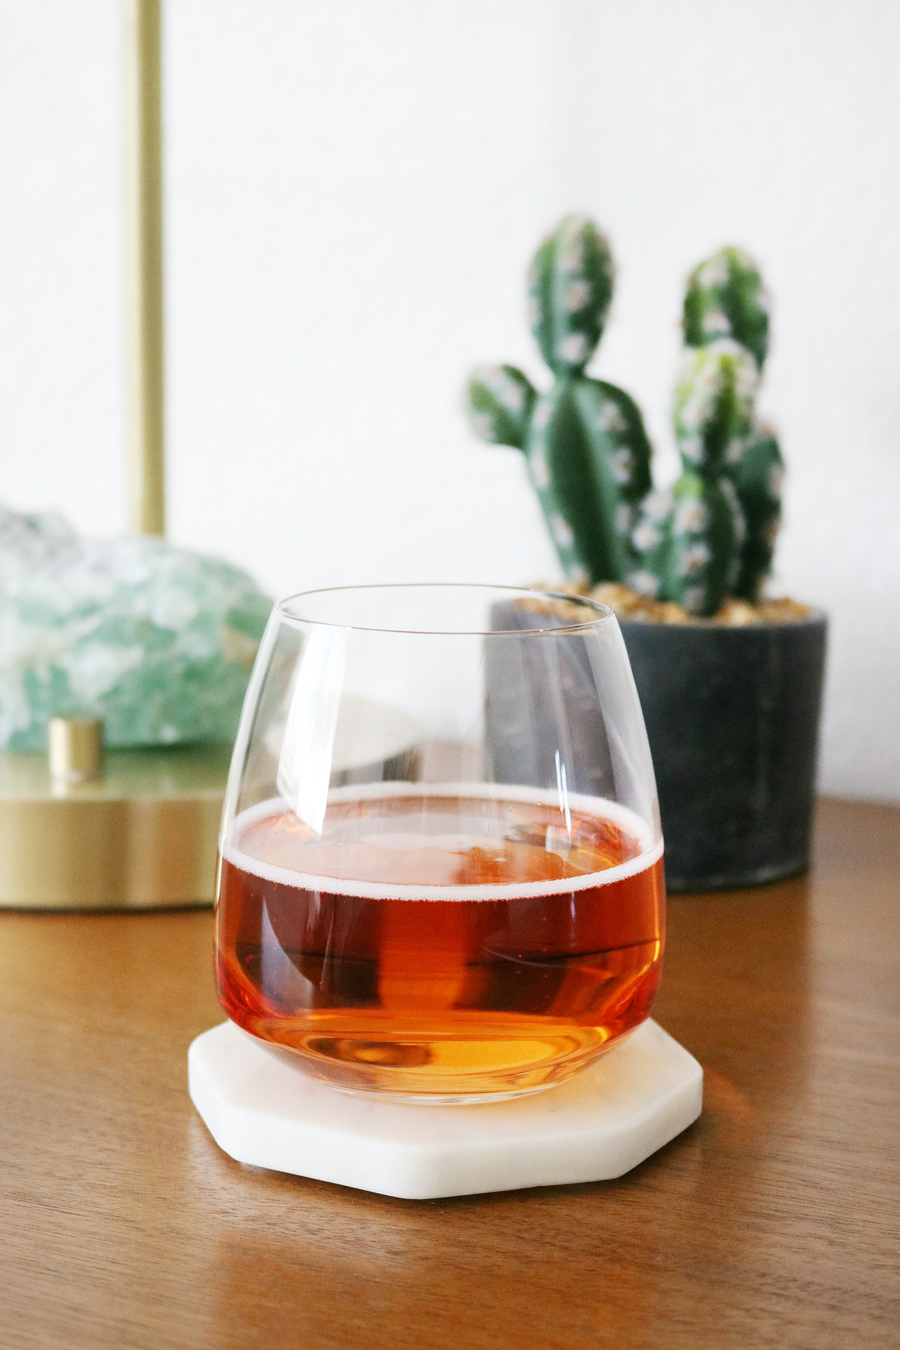 Better Homes & Gardens Stemless Wine Glasses